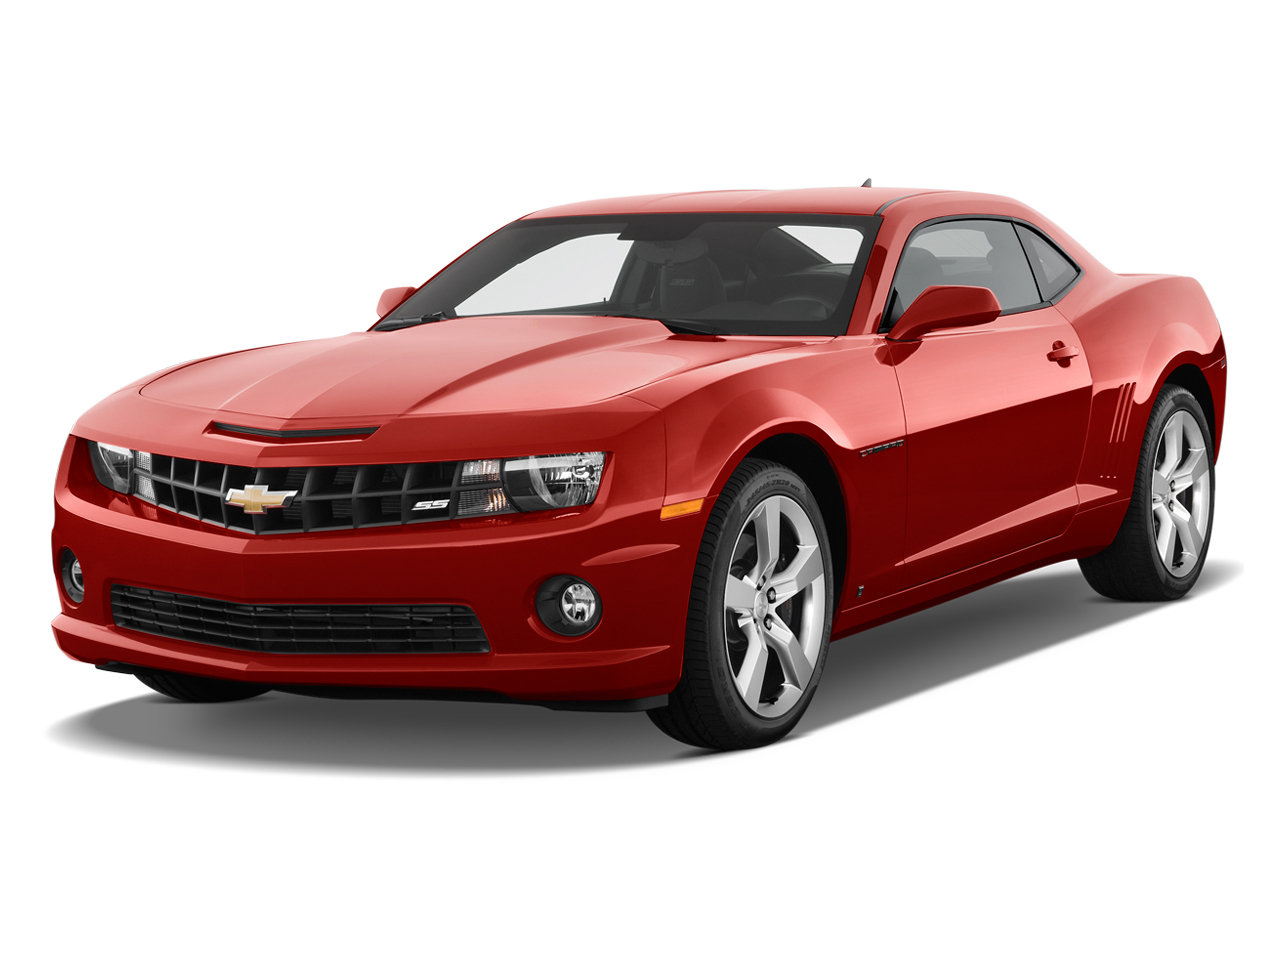 chevrolet camaro 2ss coupe-pic. 1